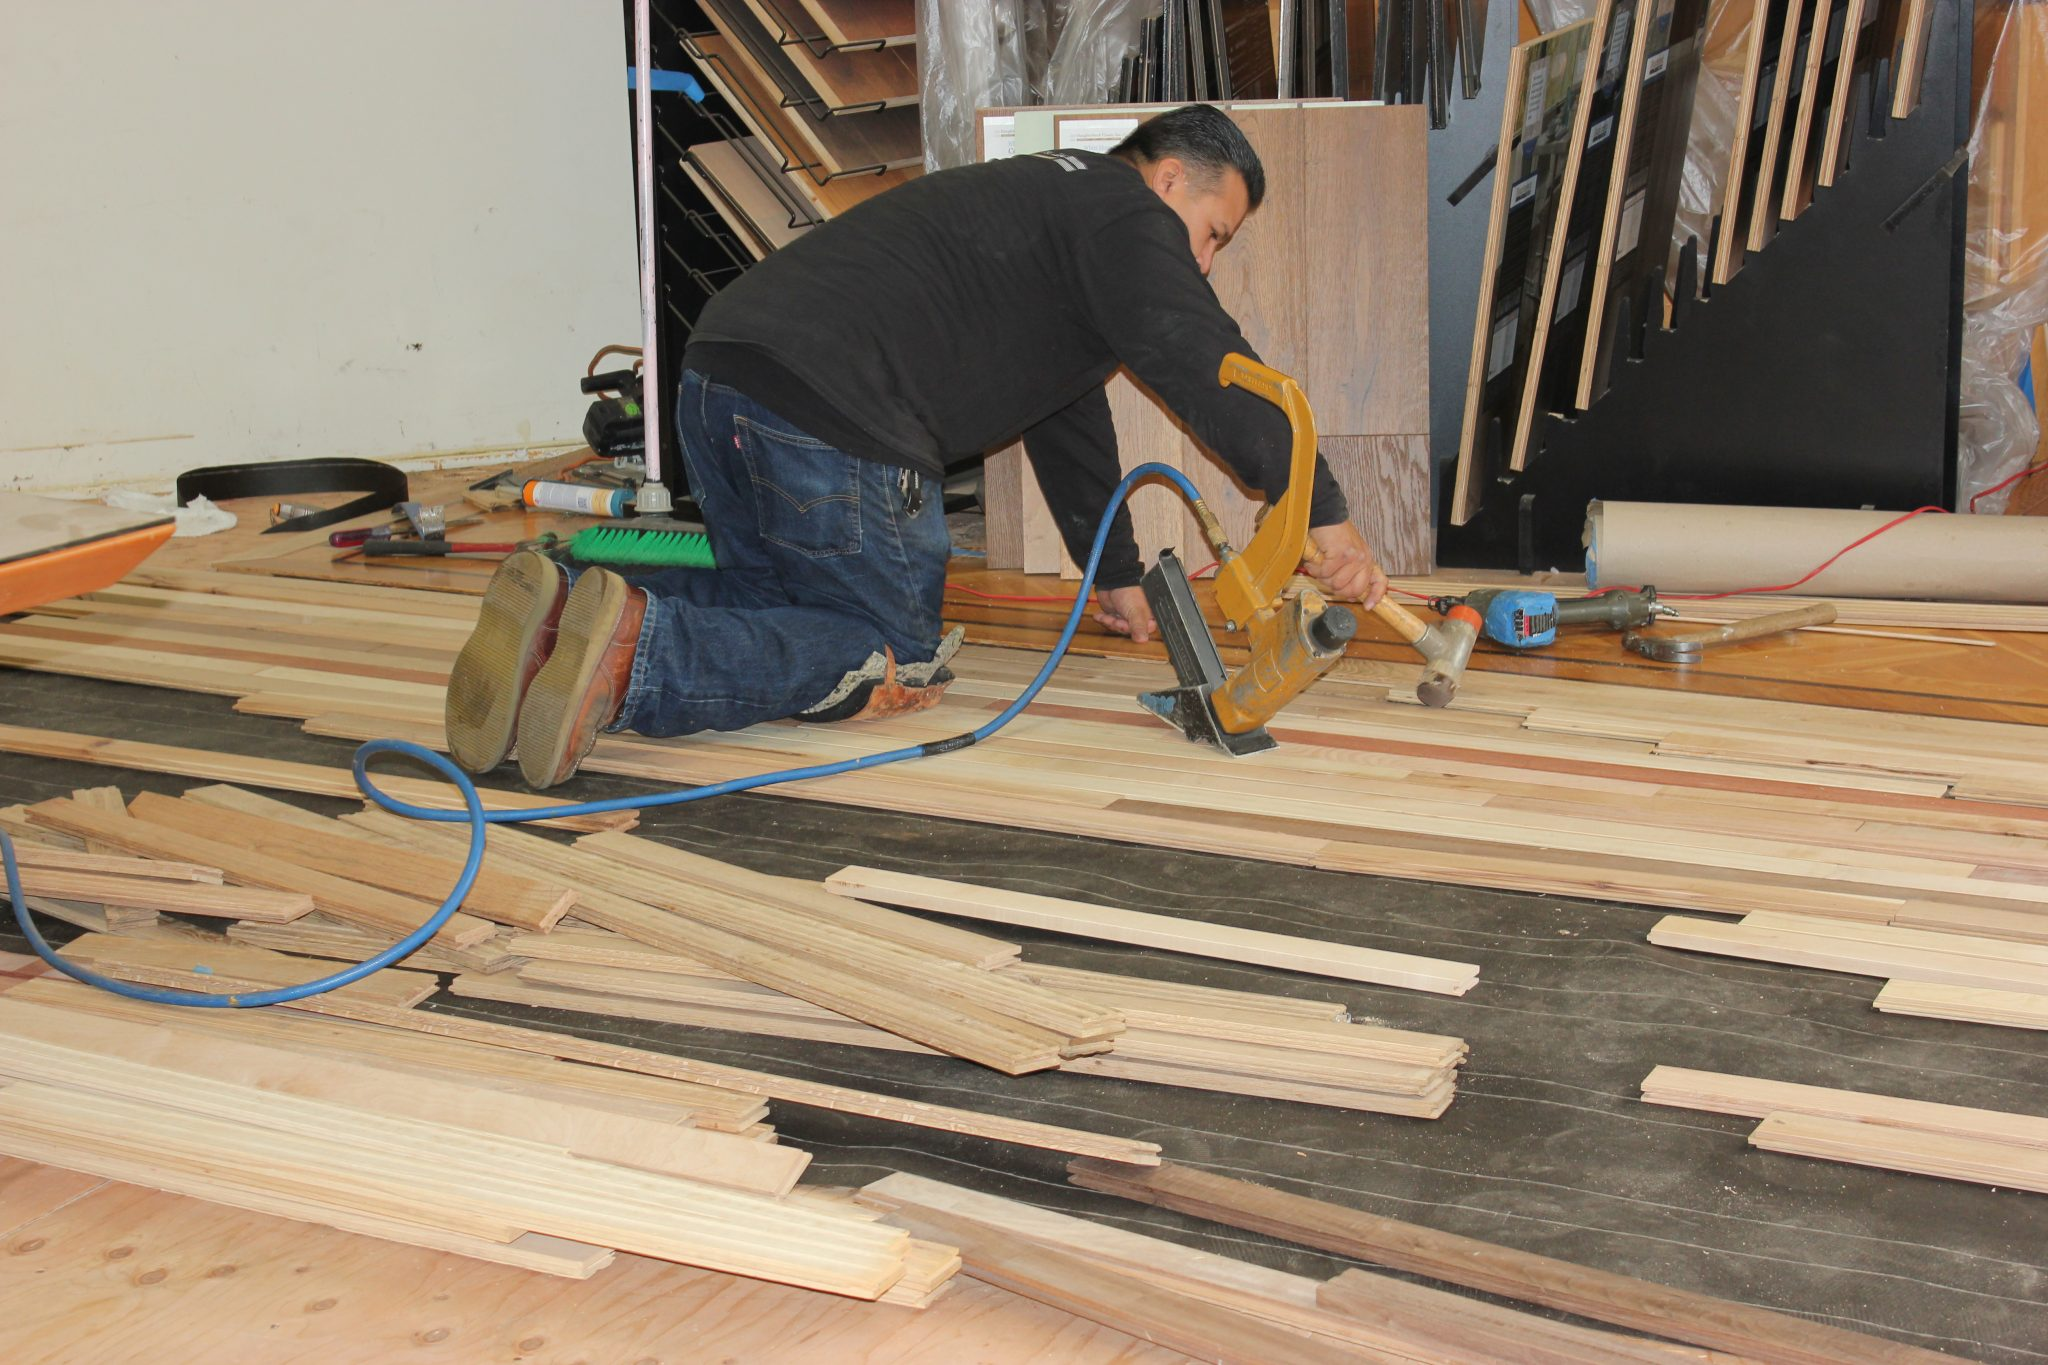 Gluing and nailing the strips | Slaughterbeck Floors